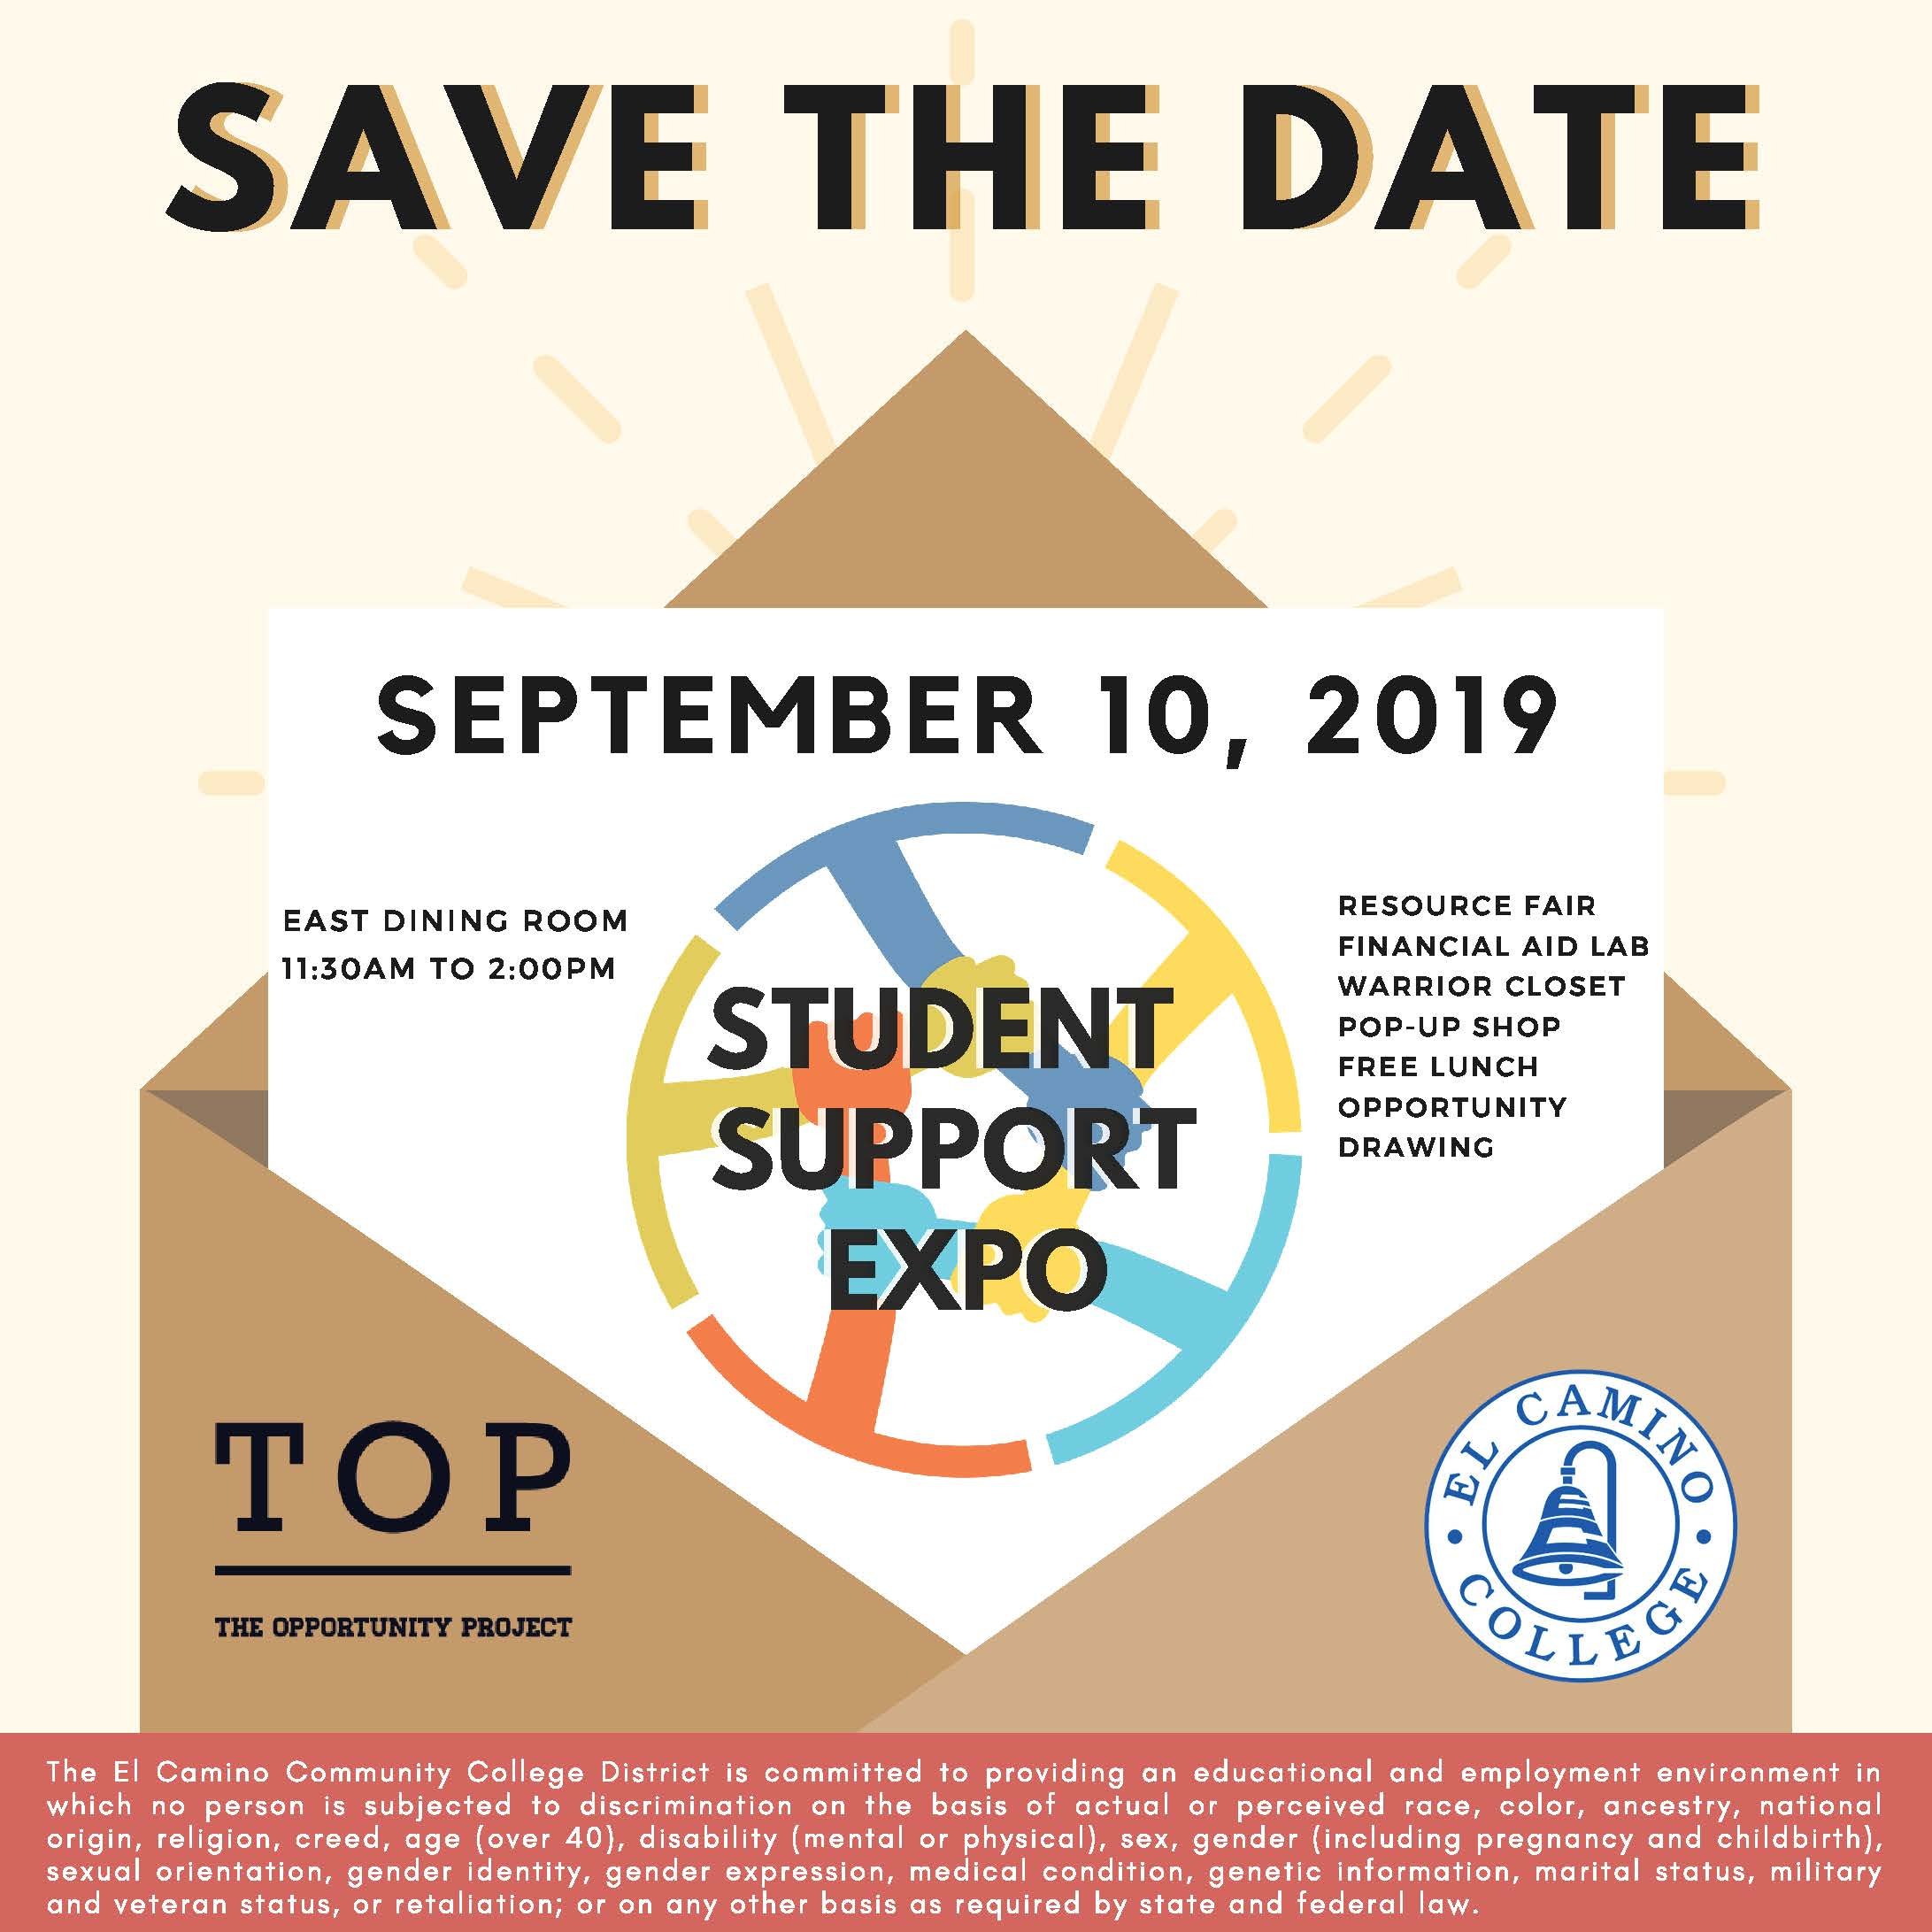 Student Support Expo Fall 2019 Save the Date